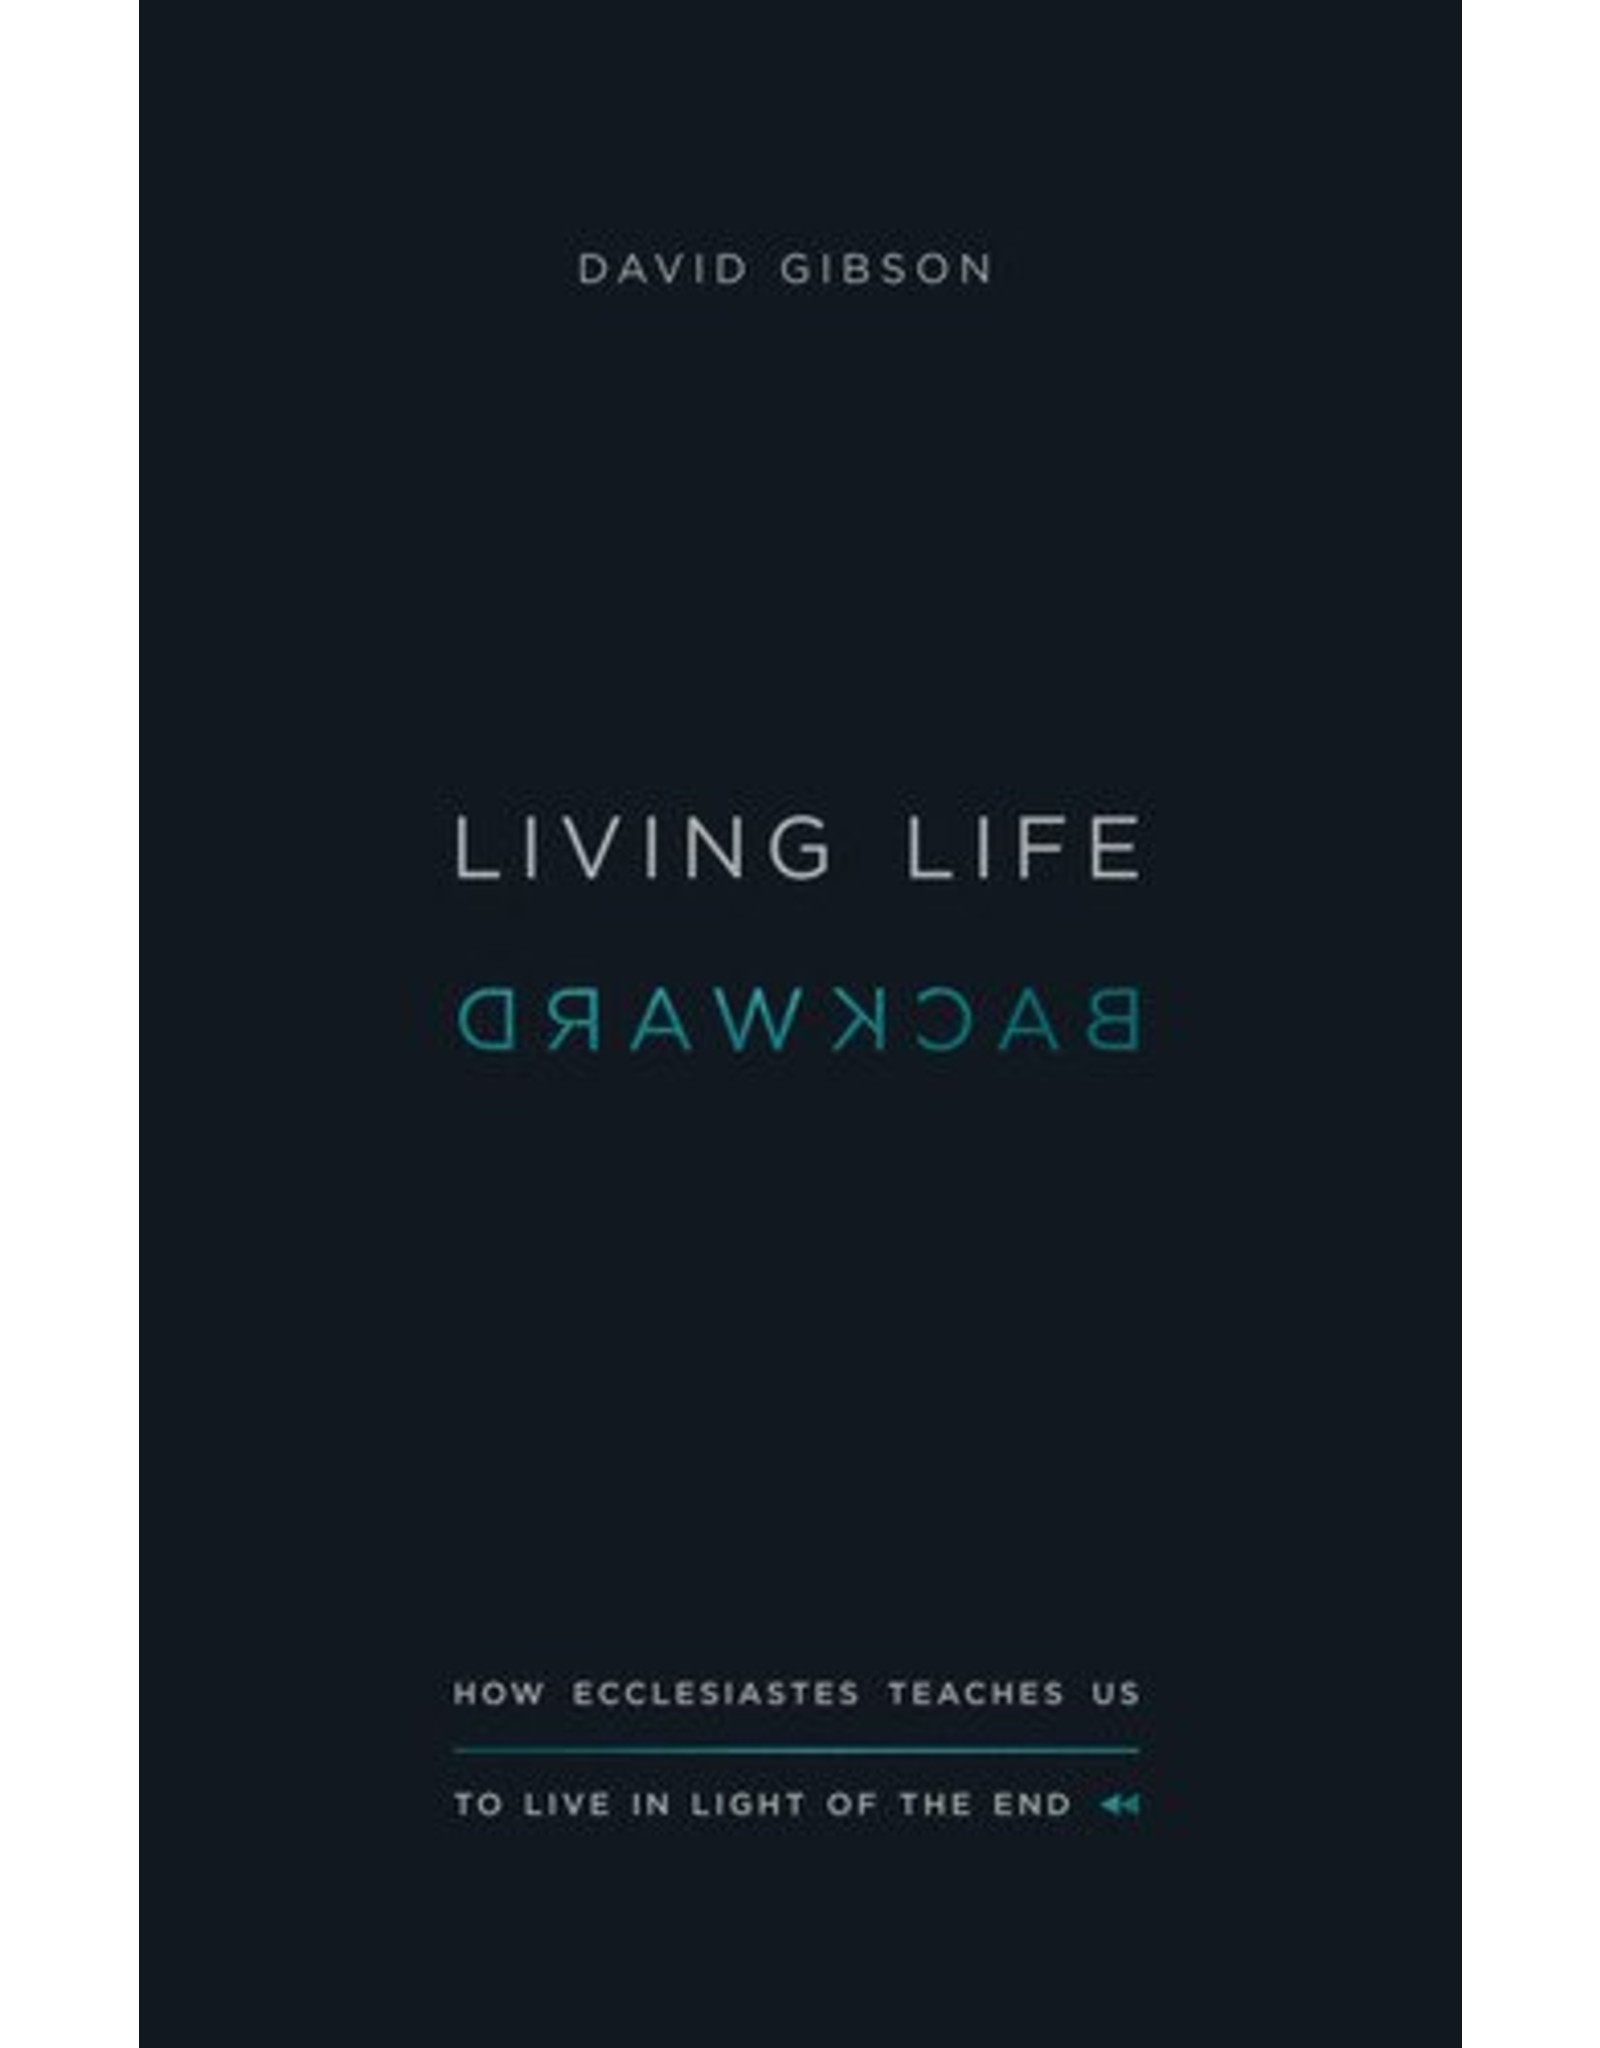 Crossway / Good News Living Life Backward: How Ecclesiastes Teaches us to Live in Light of the End